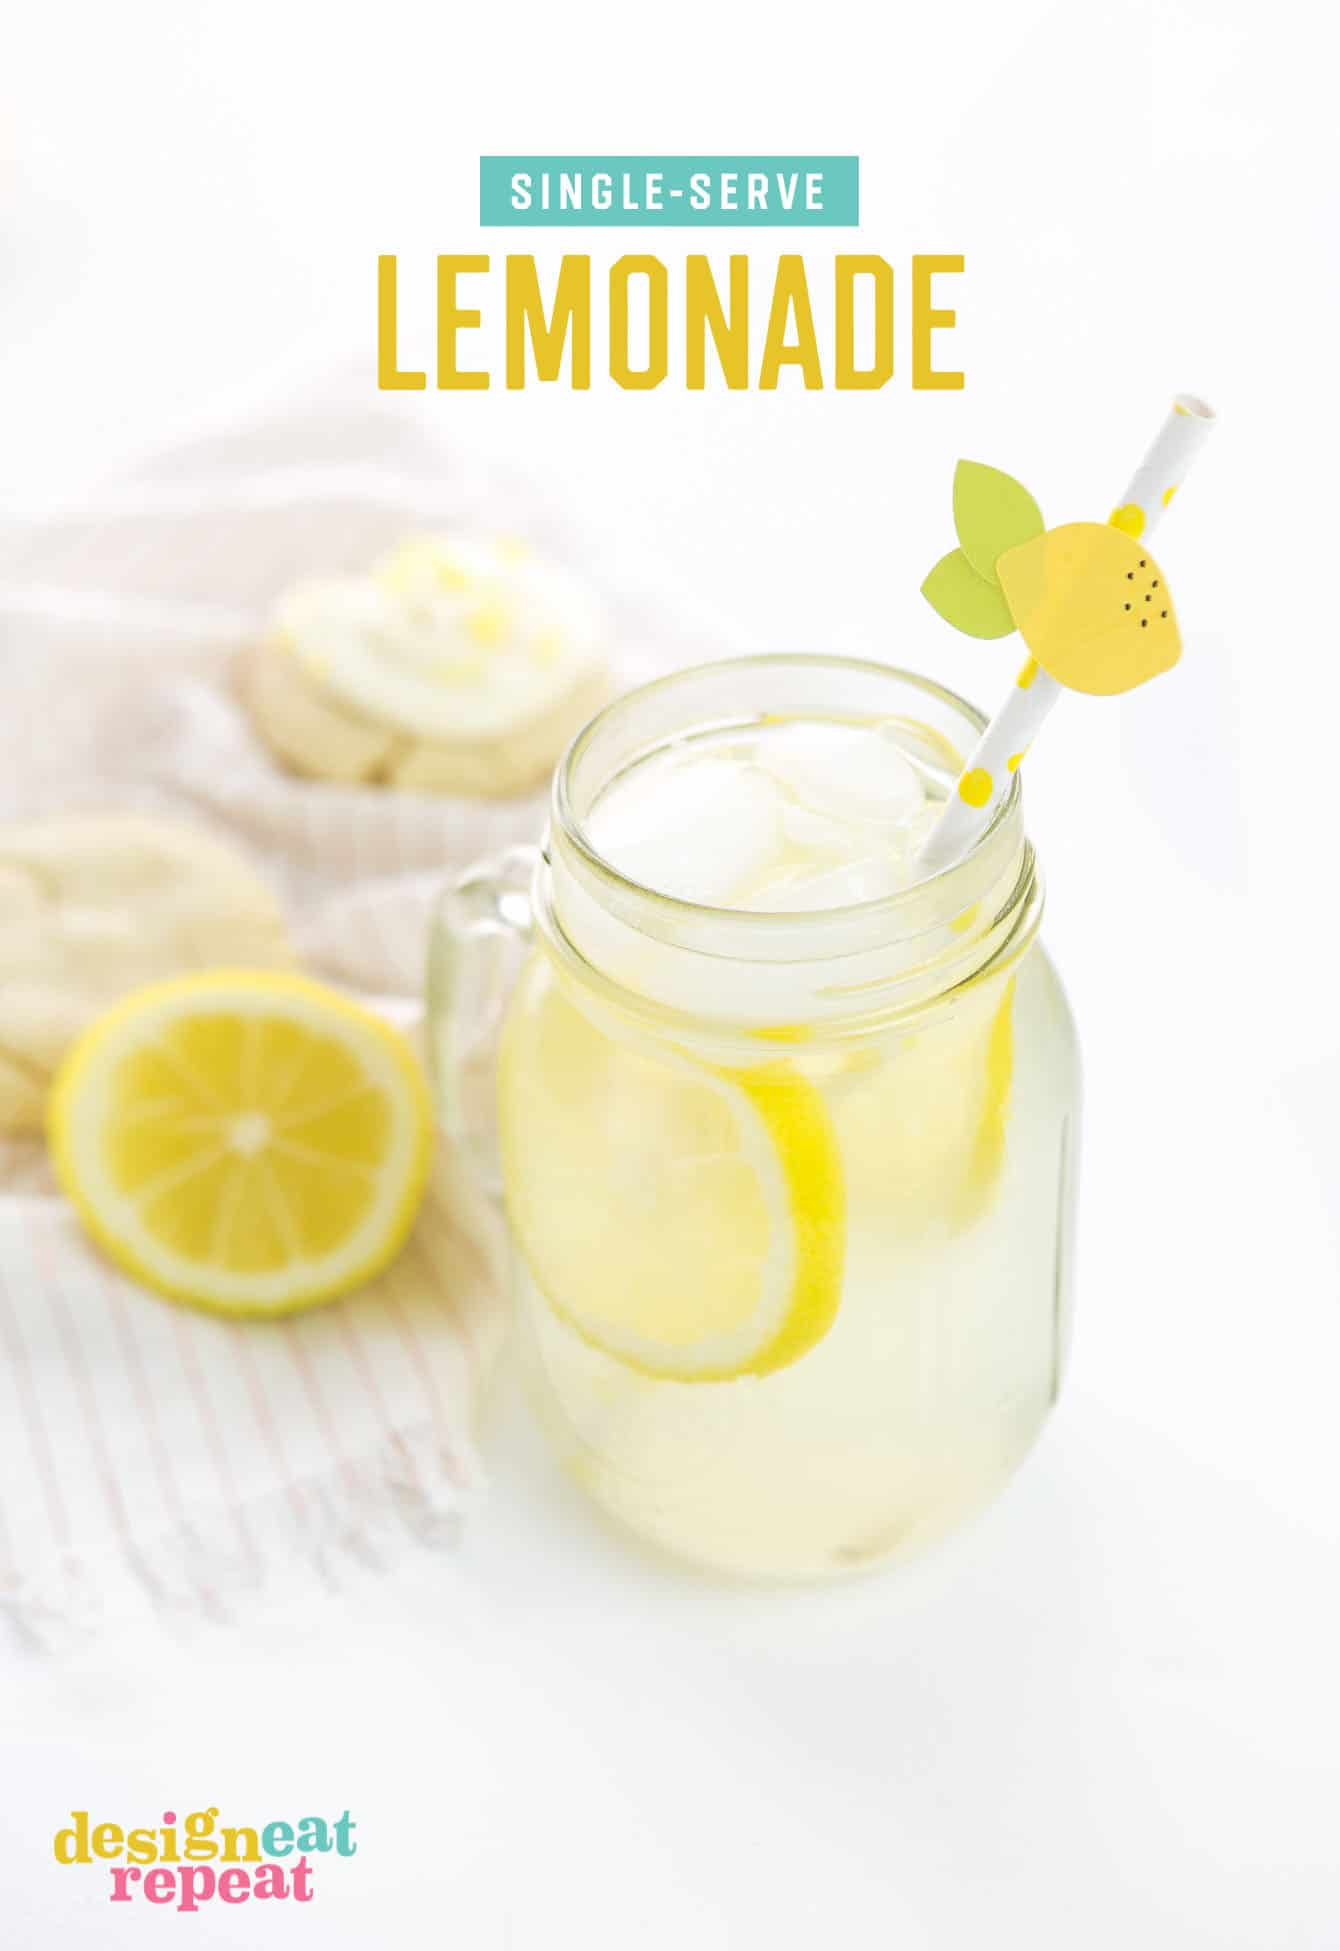 Mason jar of freshly squeezed lemonade with paper straw and lemon topper.